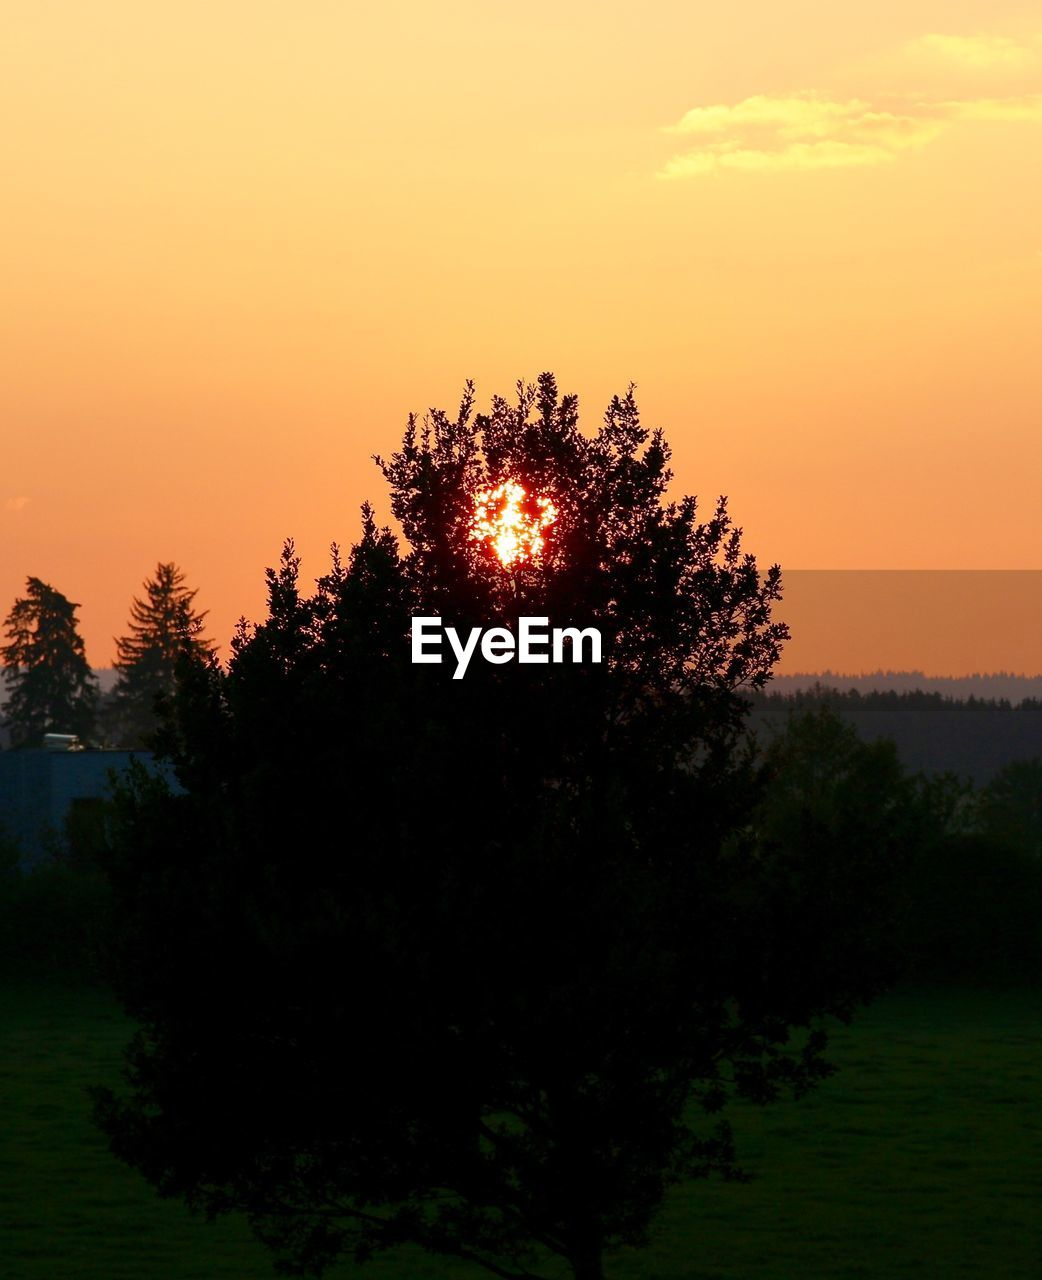 tree, sunset, nature, tranquil scene, scenics, silhouette, beauty in nature, orange color, tranquility, growth, no people, sky, outdoors, landscape, clear sky, day